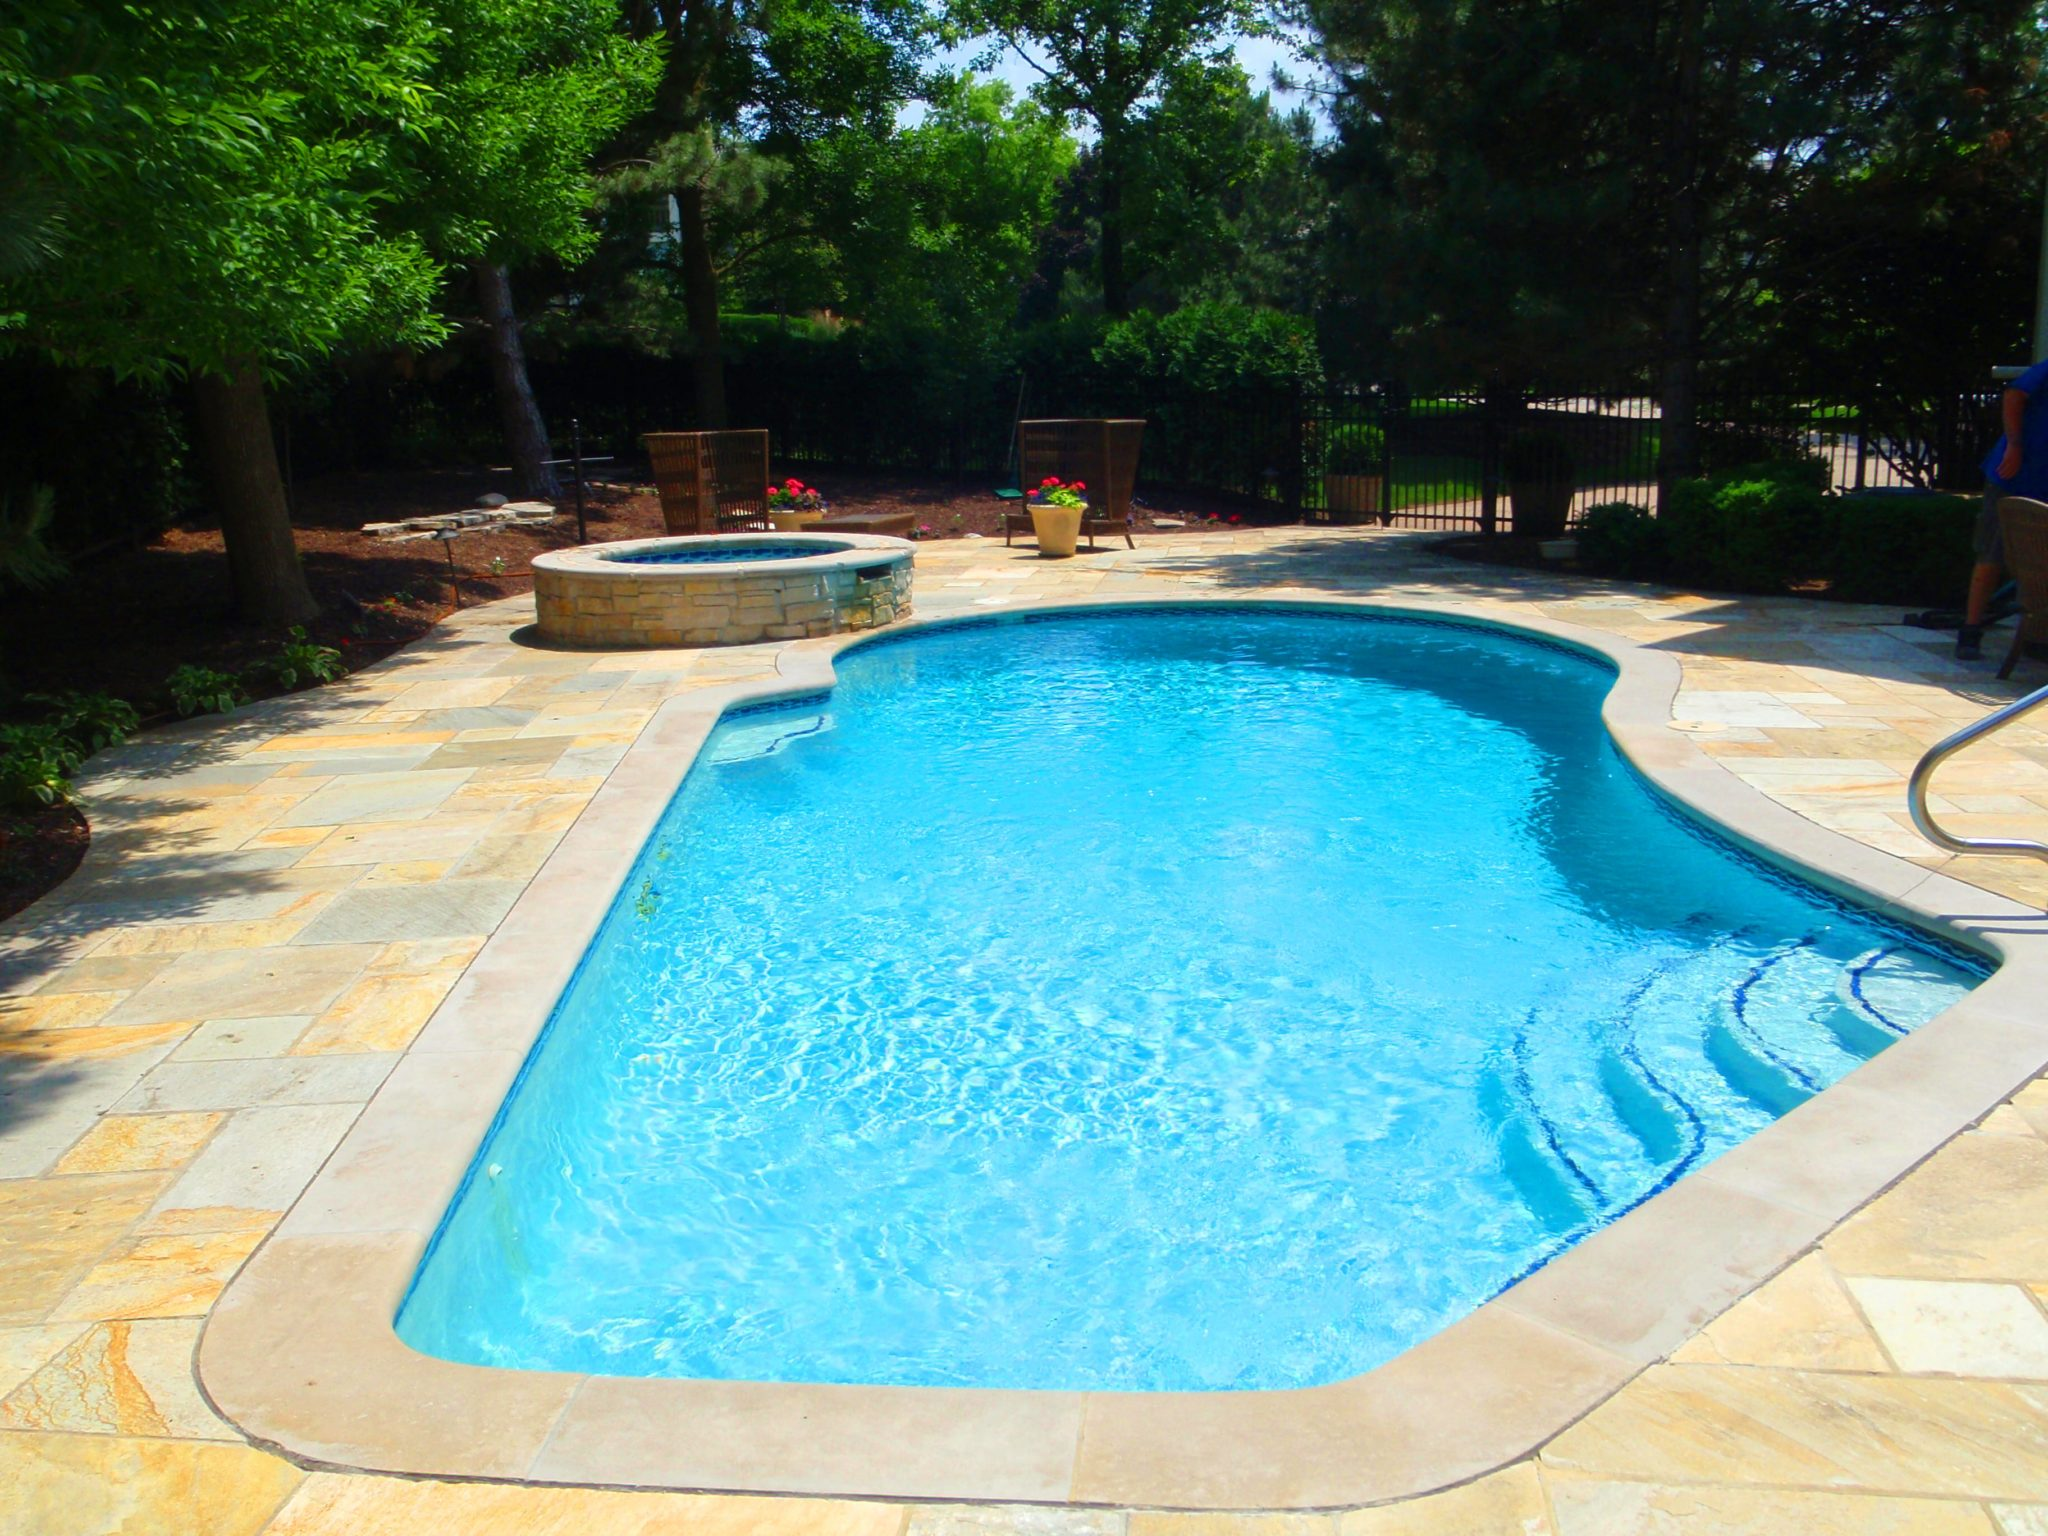 Gunite pools danna pools inc - Swimming pool designs galleries ...